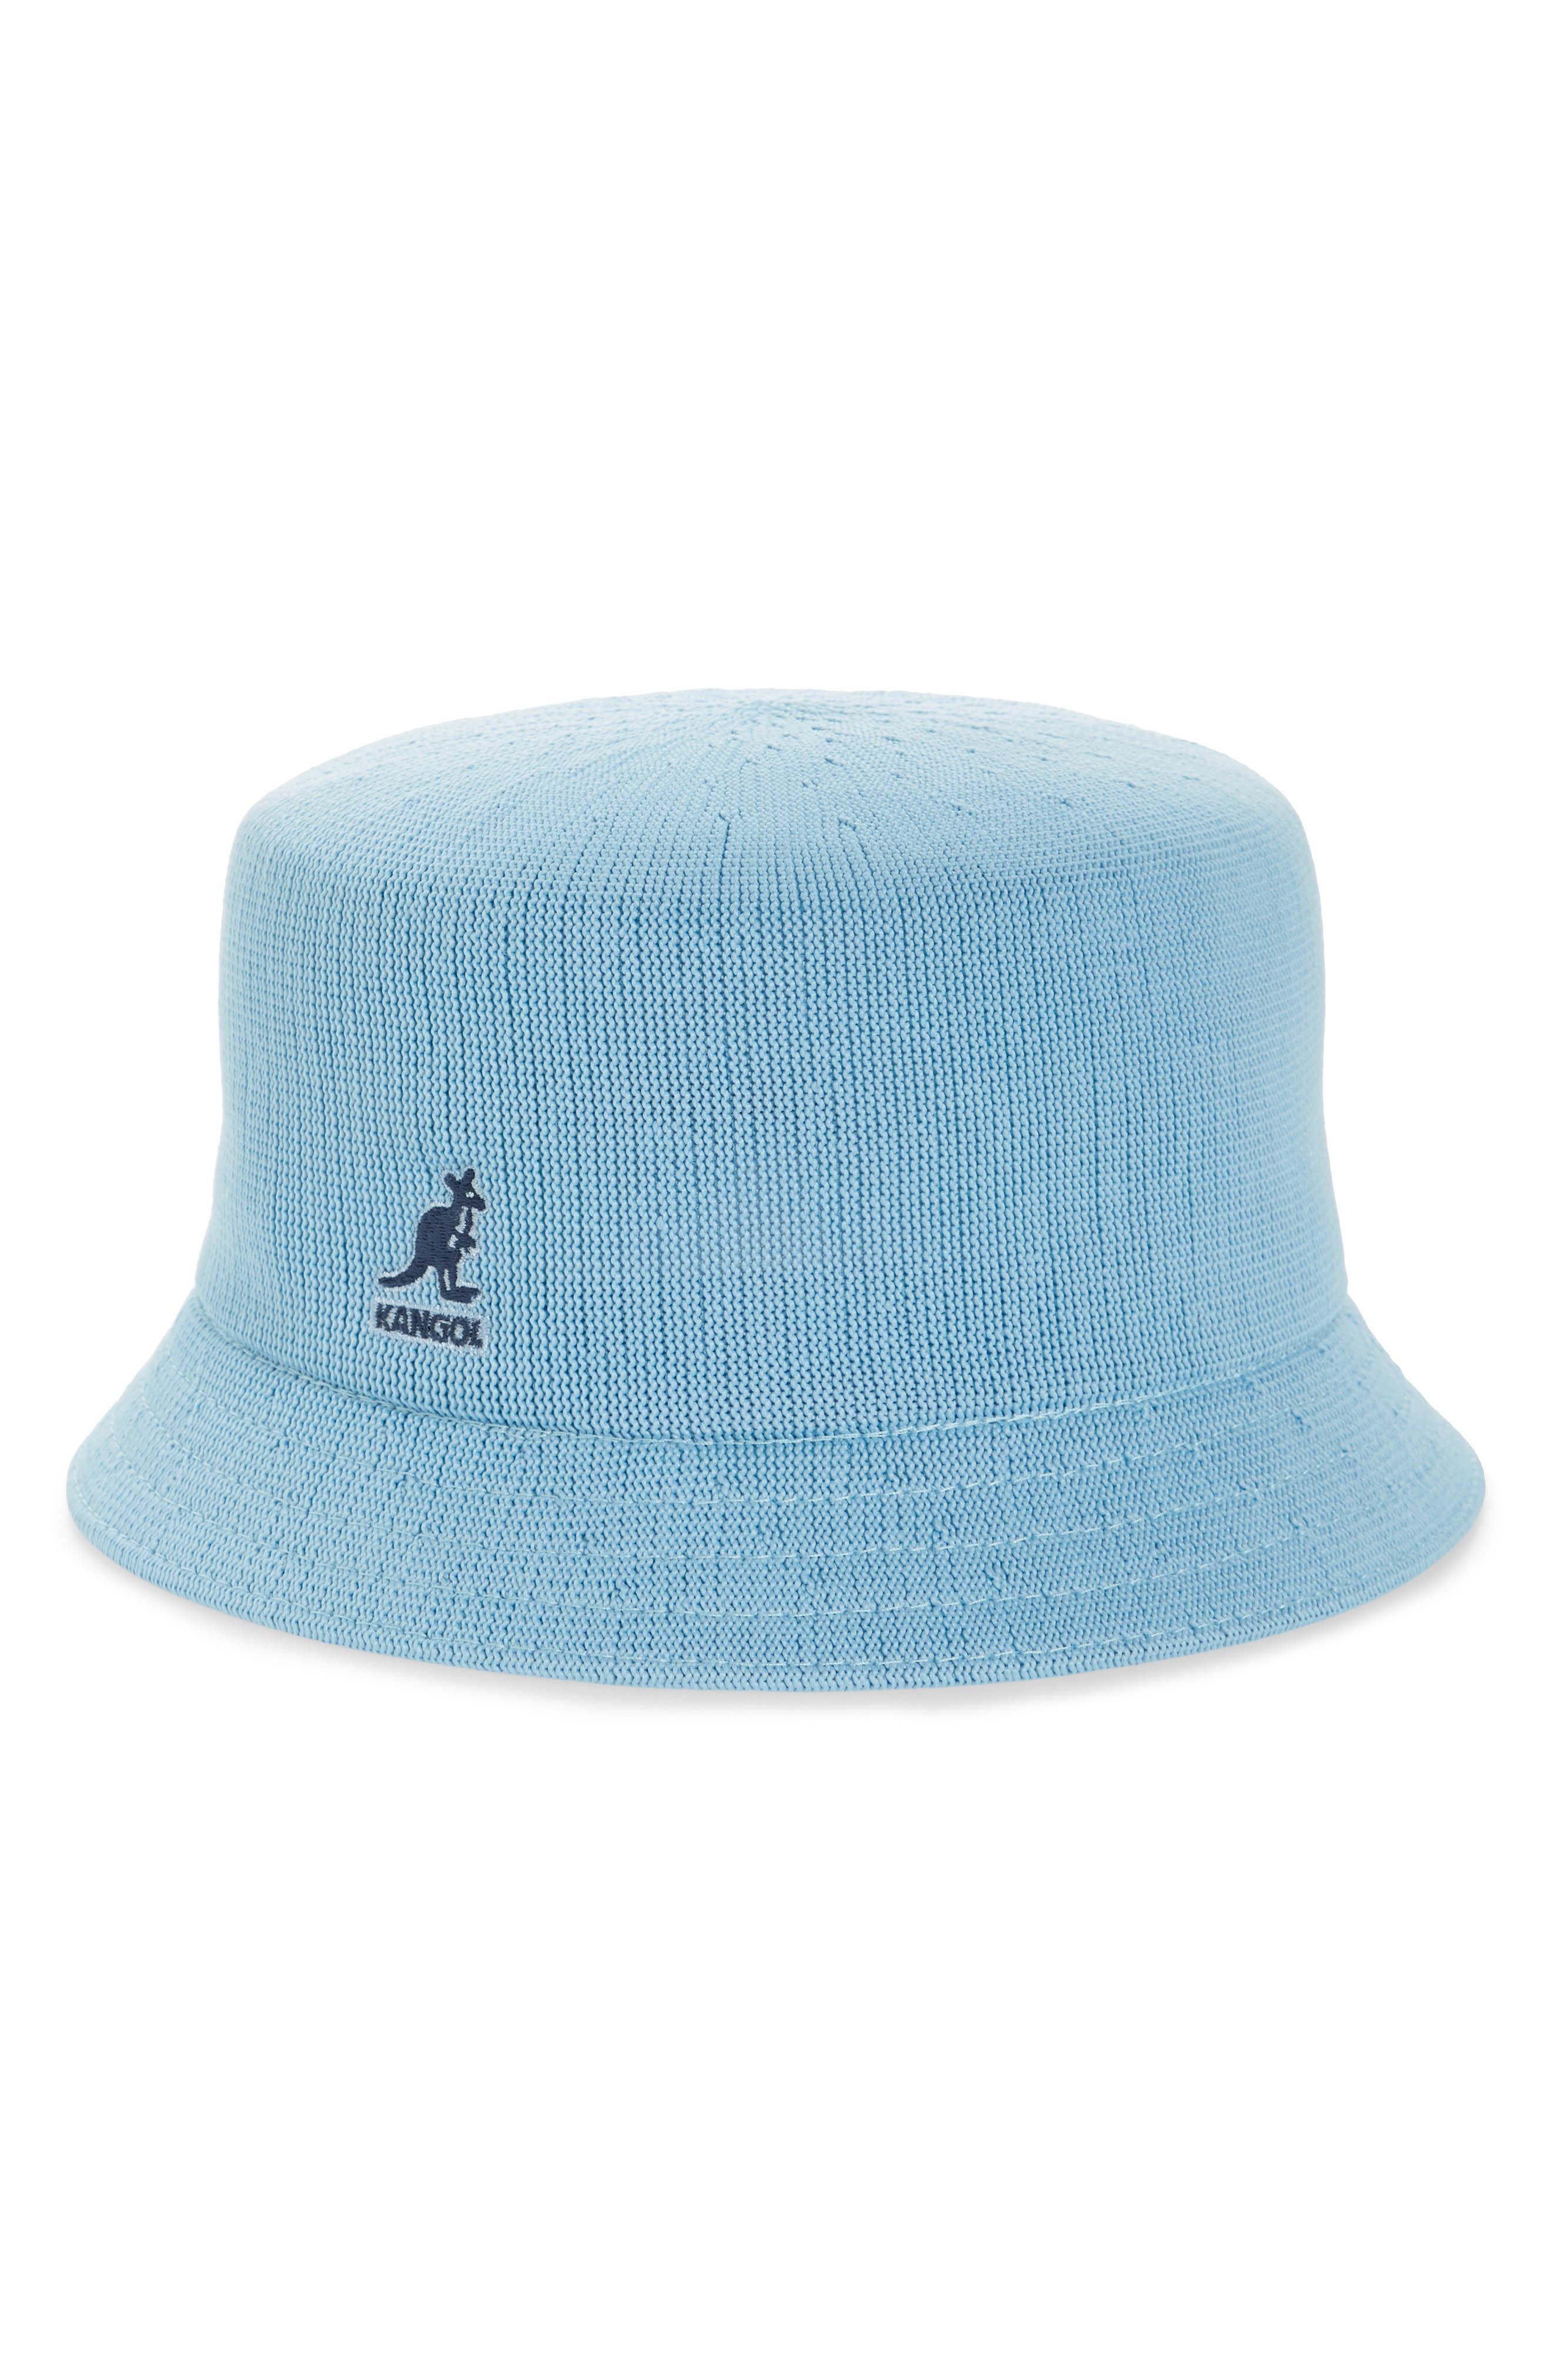 d24f5a1f0d1 Kangol Hats for Women